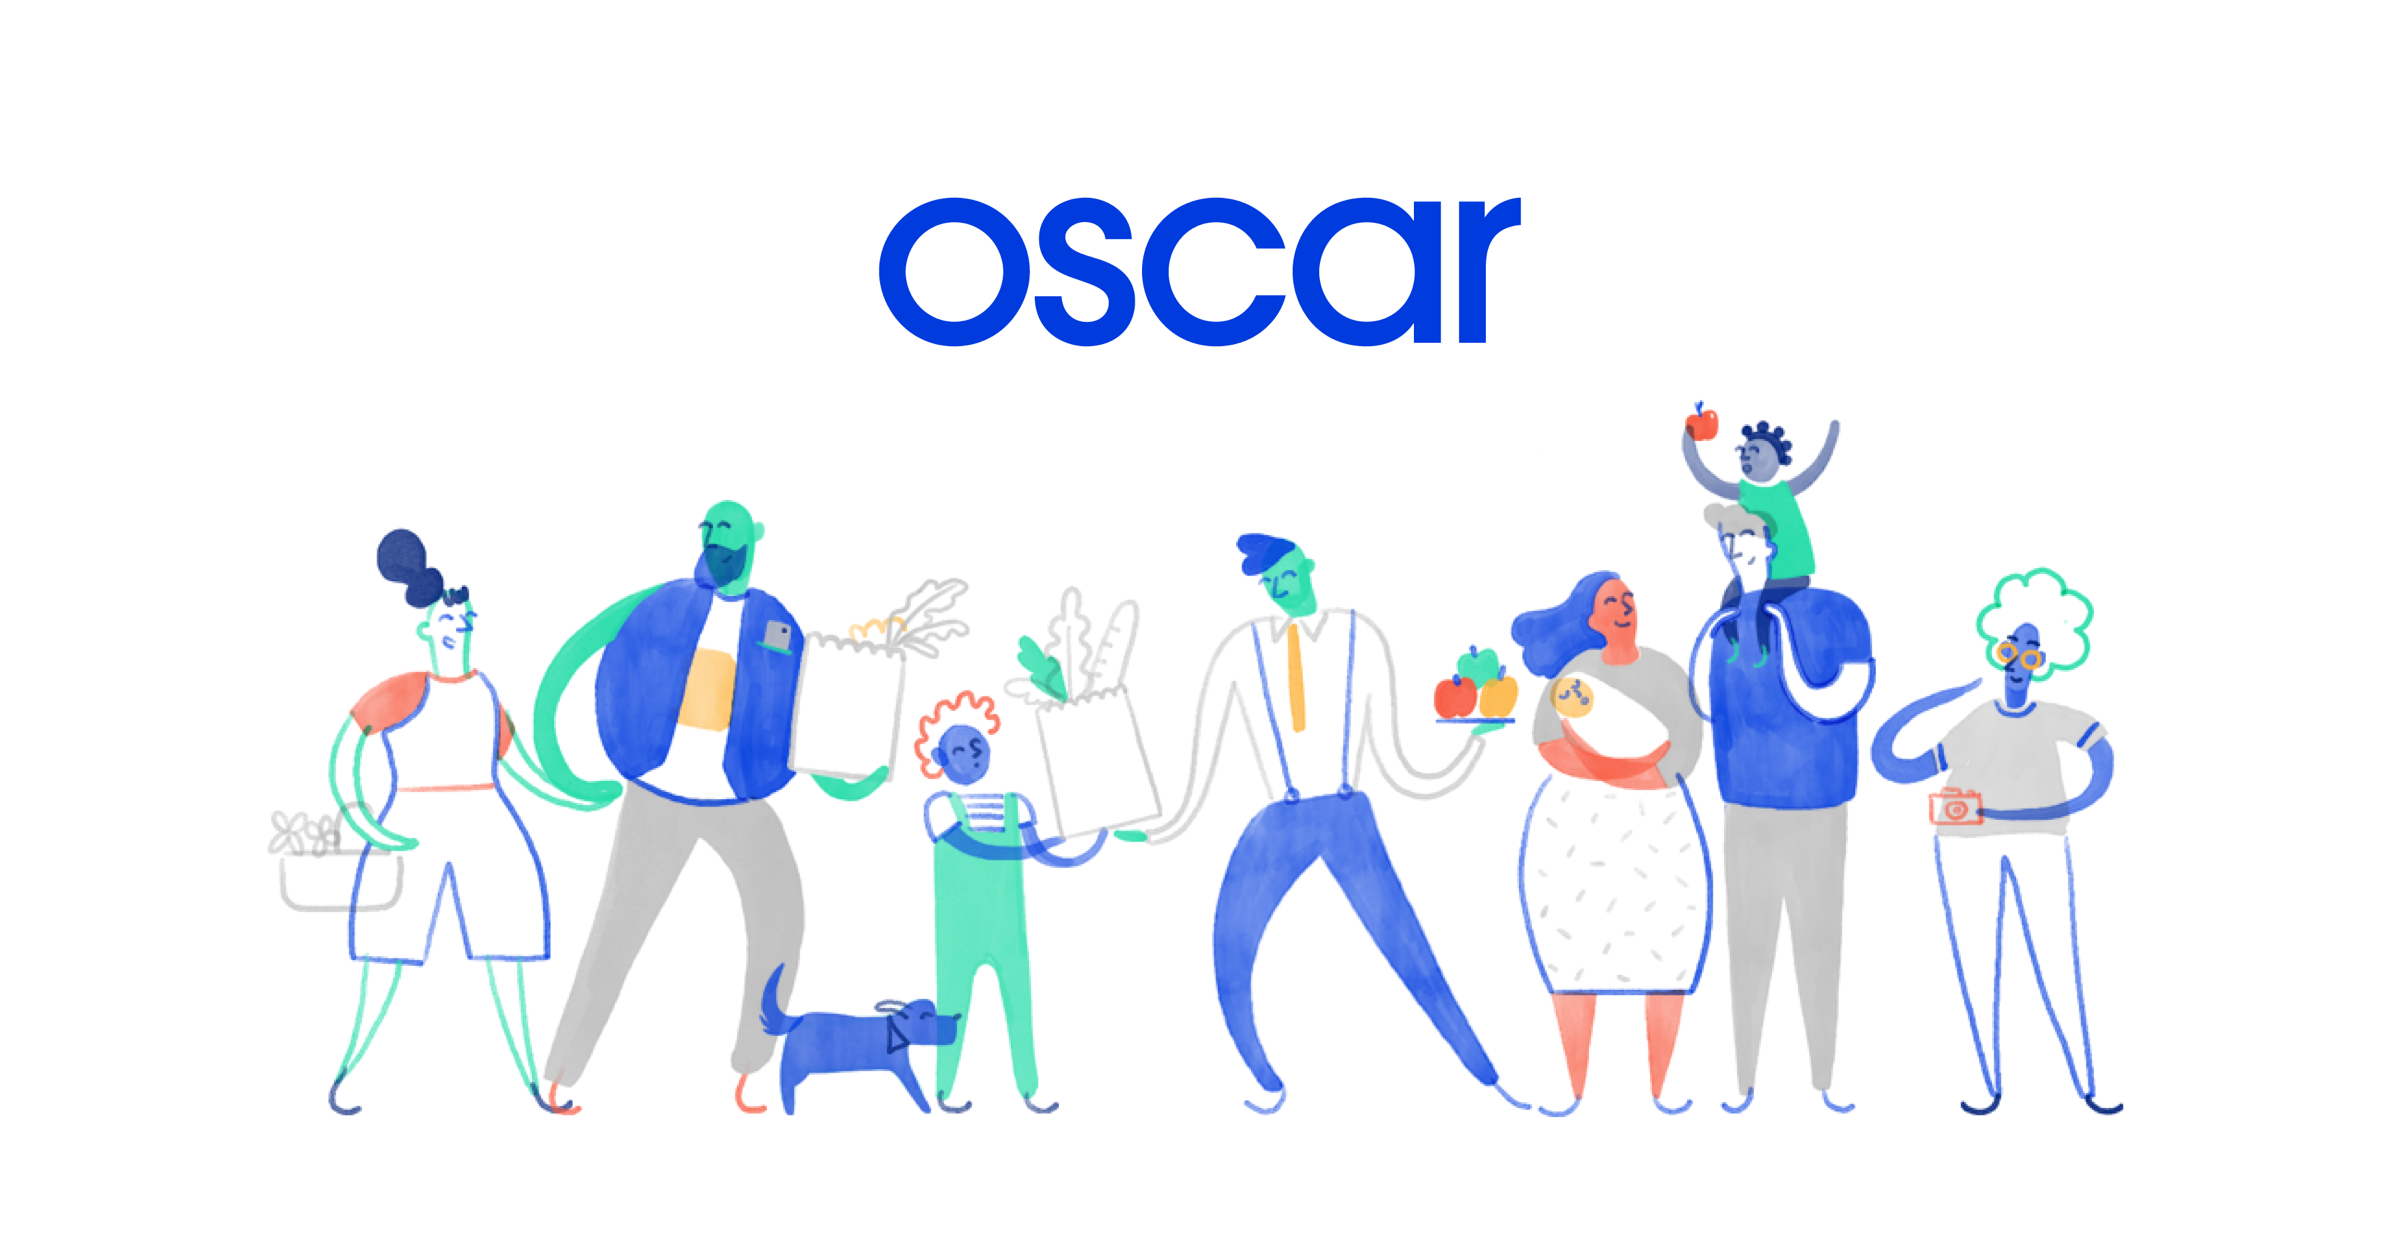 Oscar health logo download free clipart with a transparent.